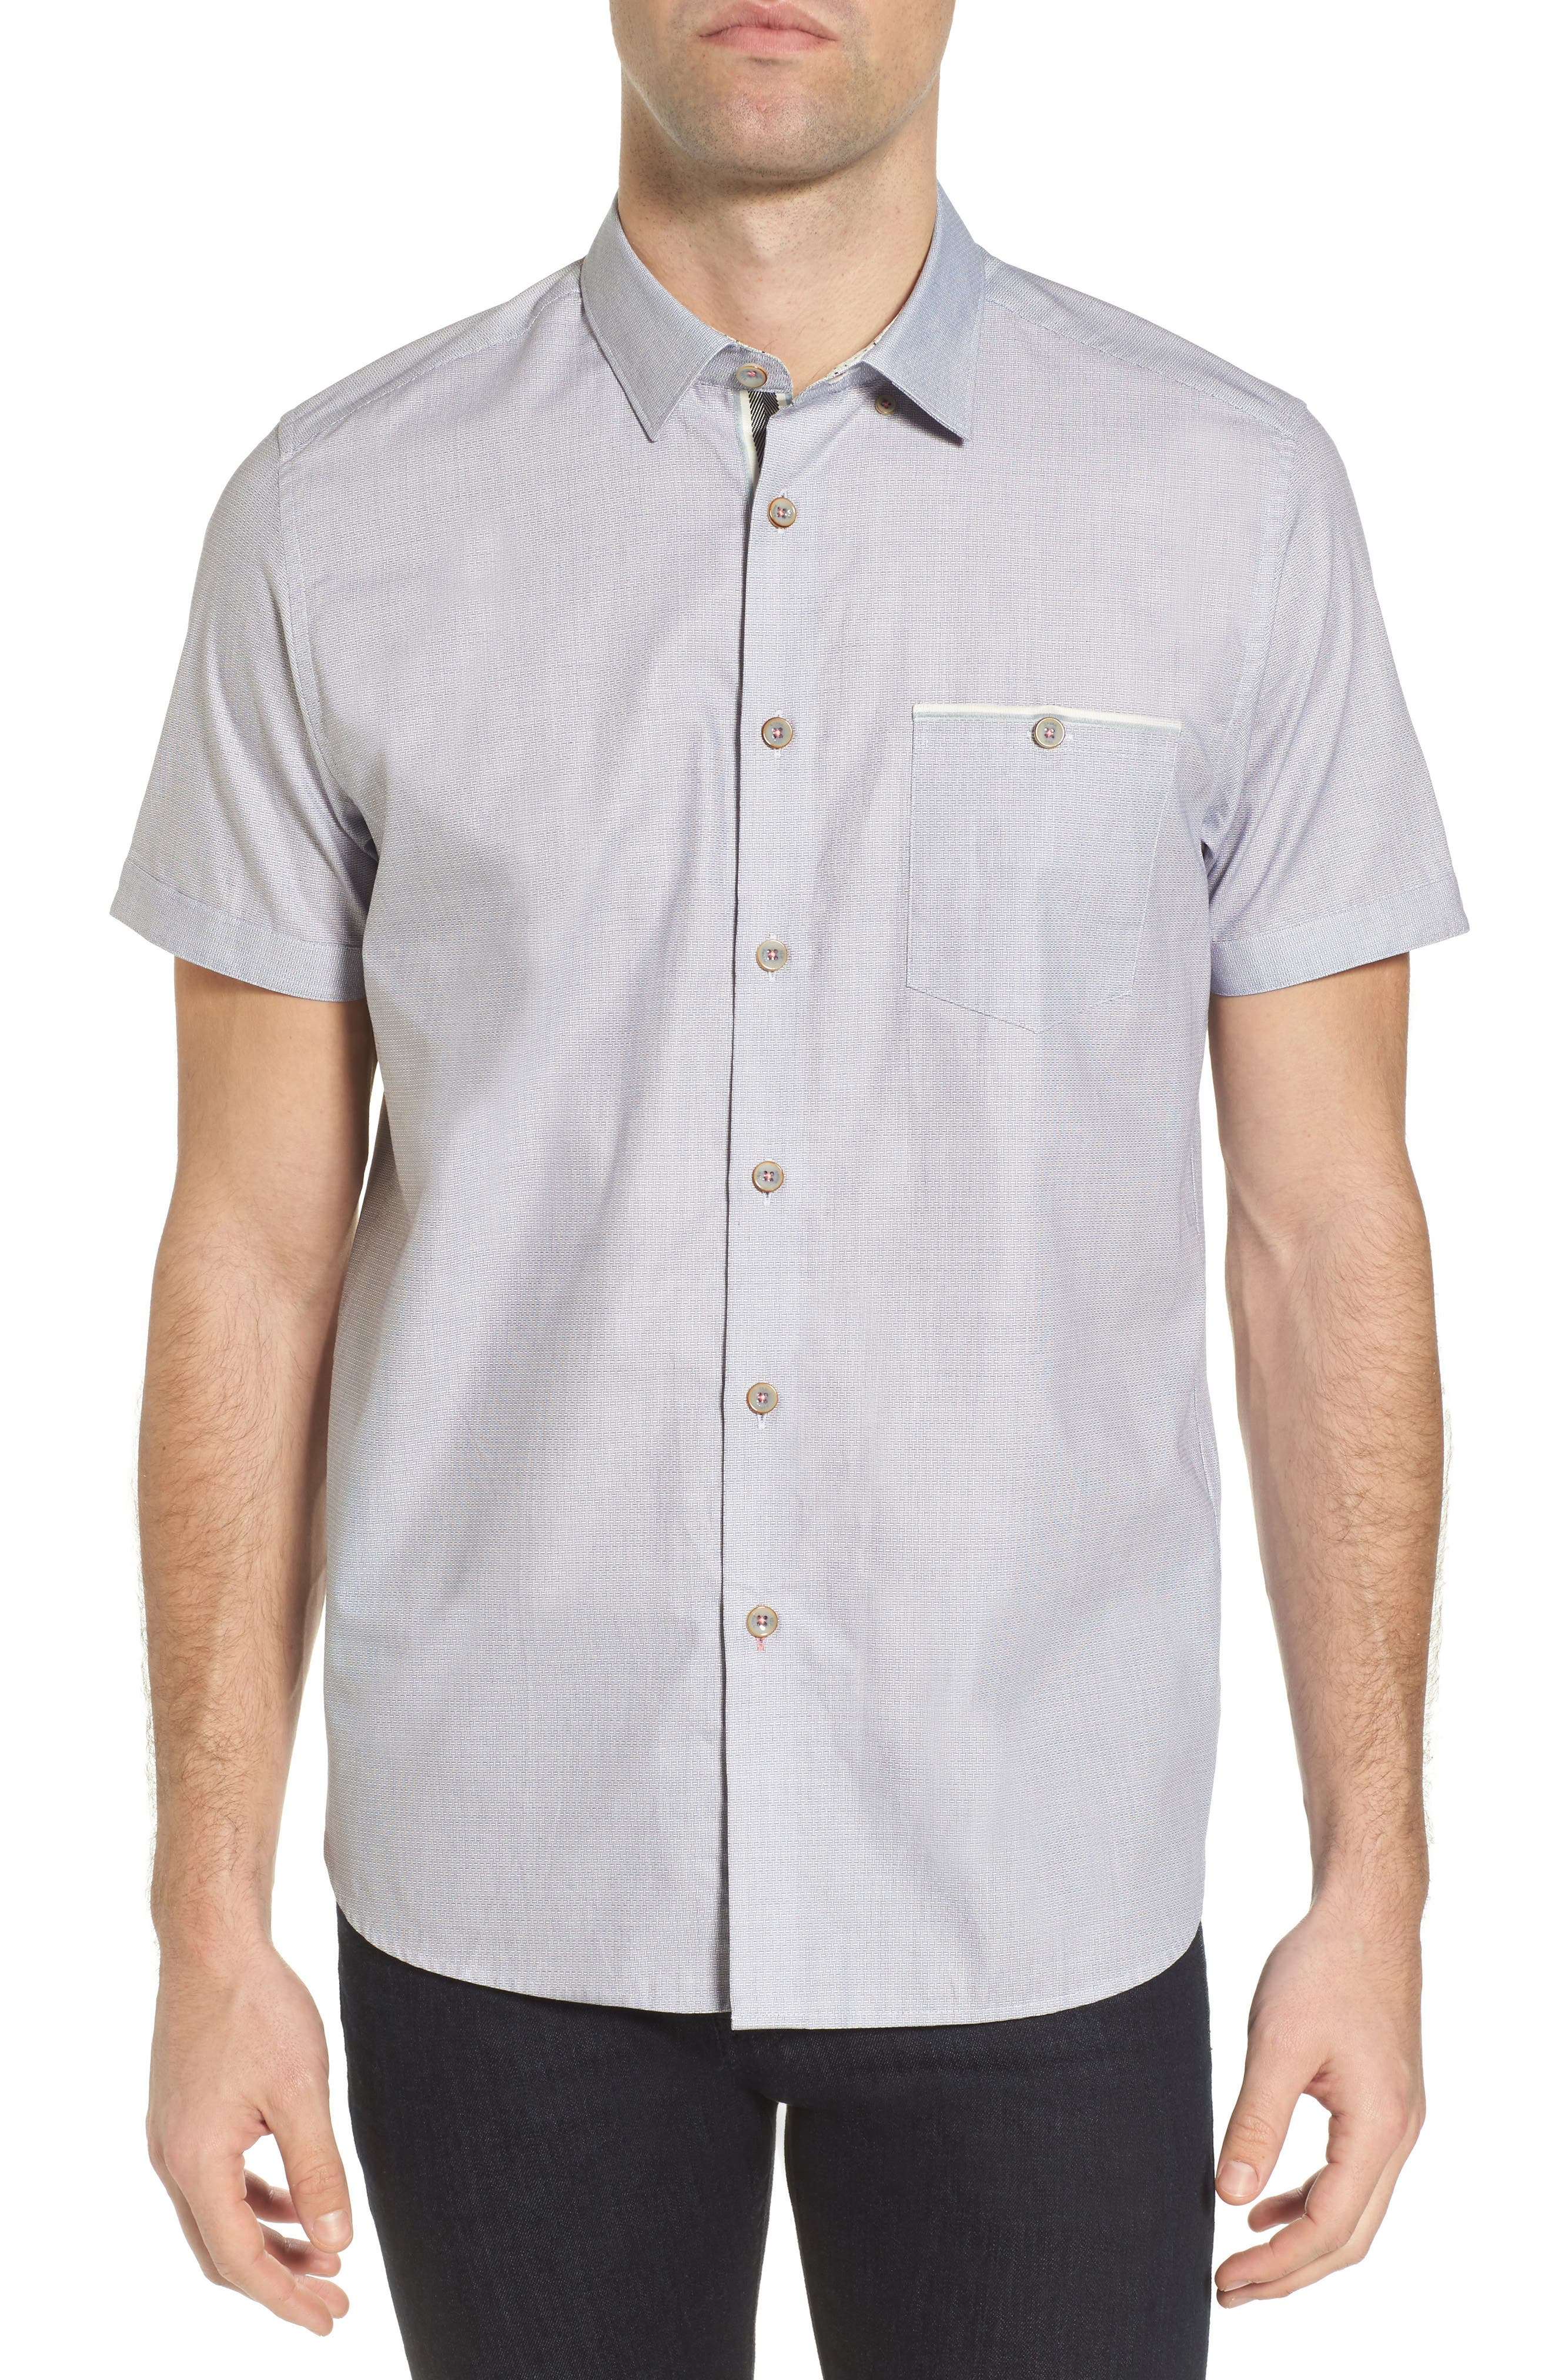 Wonky Trim Fit Oxford Sport Shirt,                         Main,                         color, 100